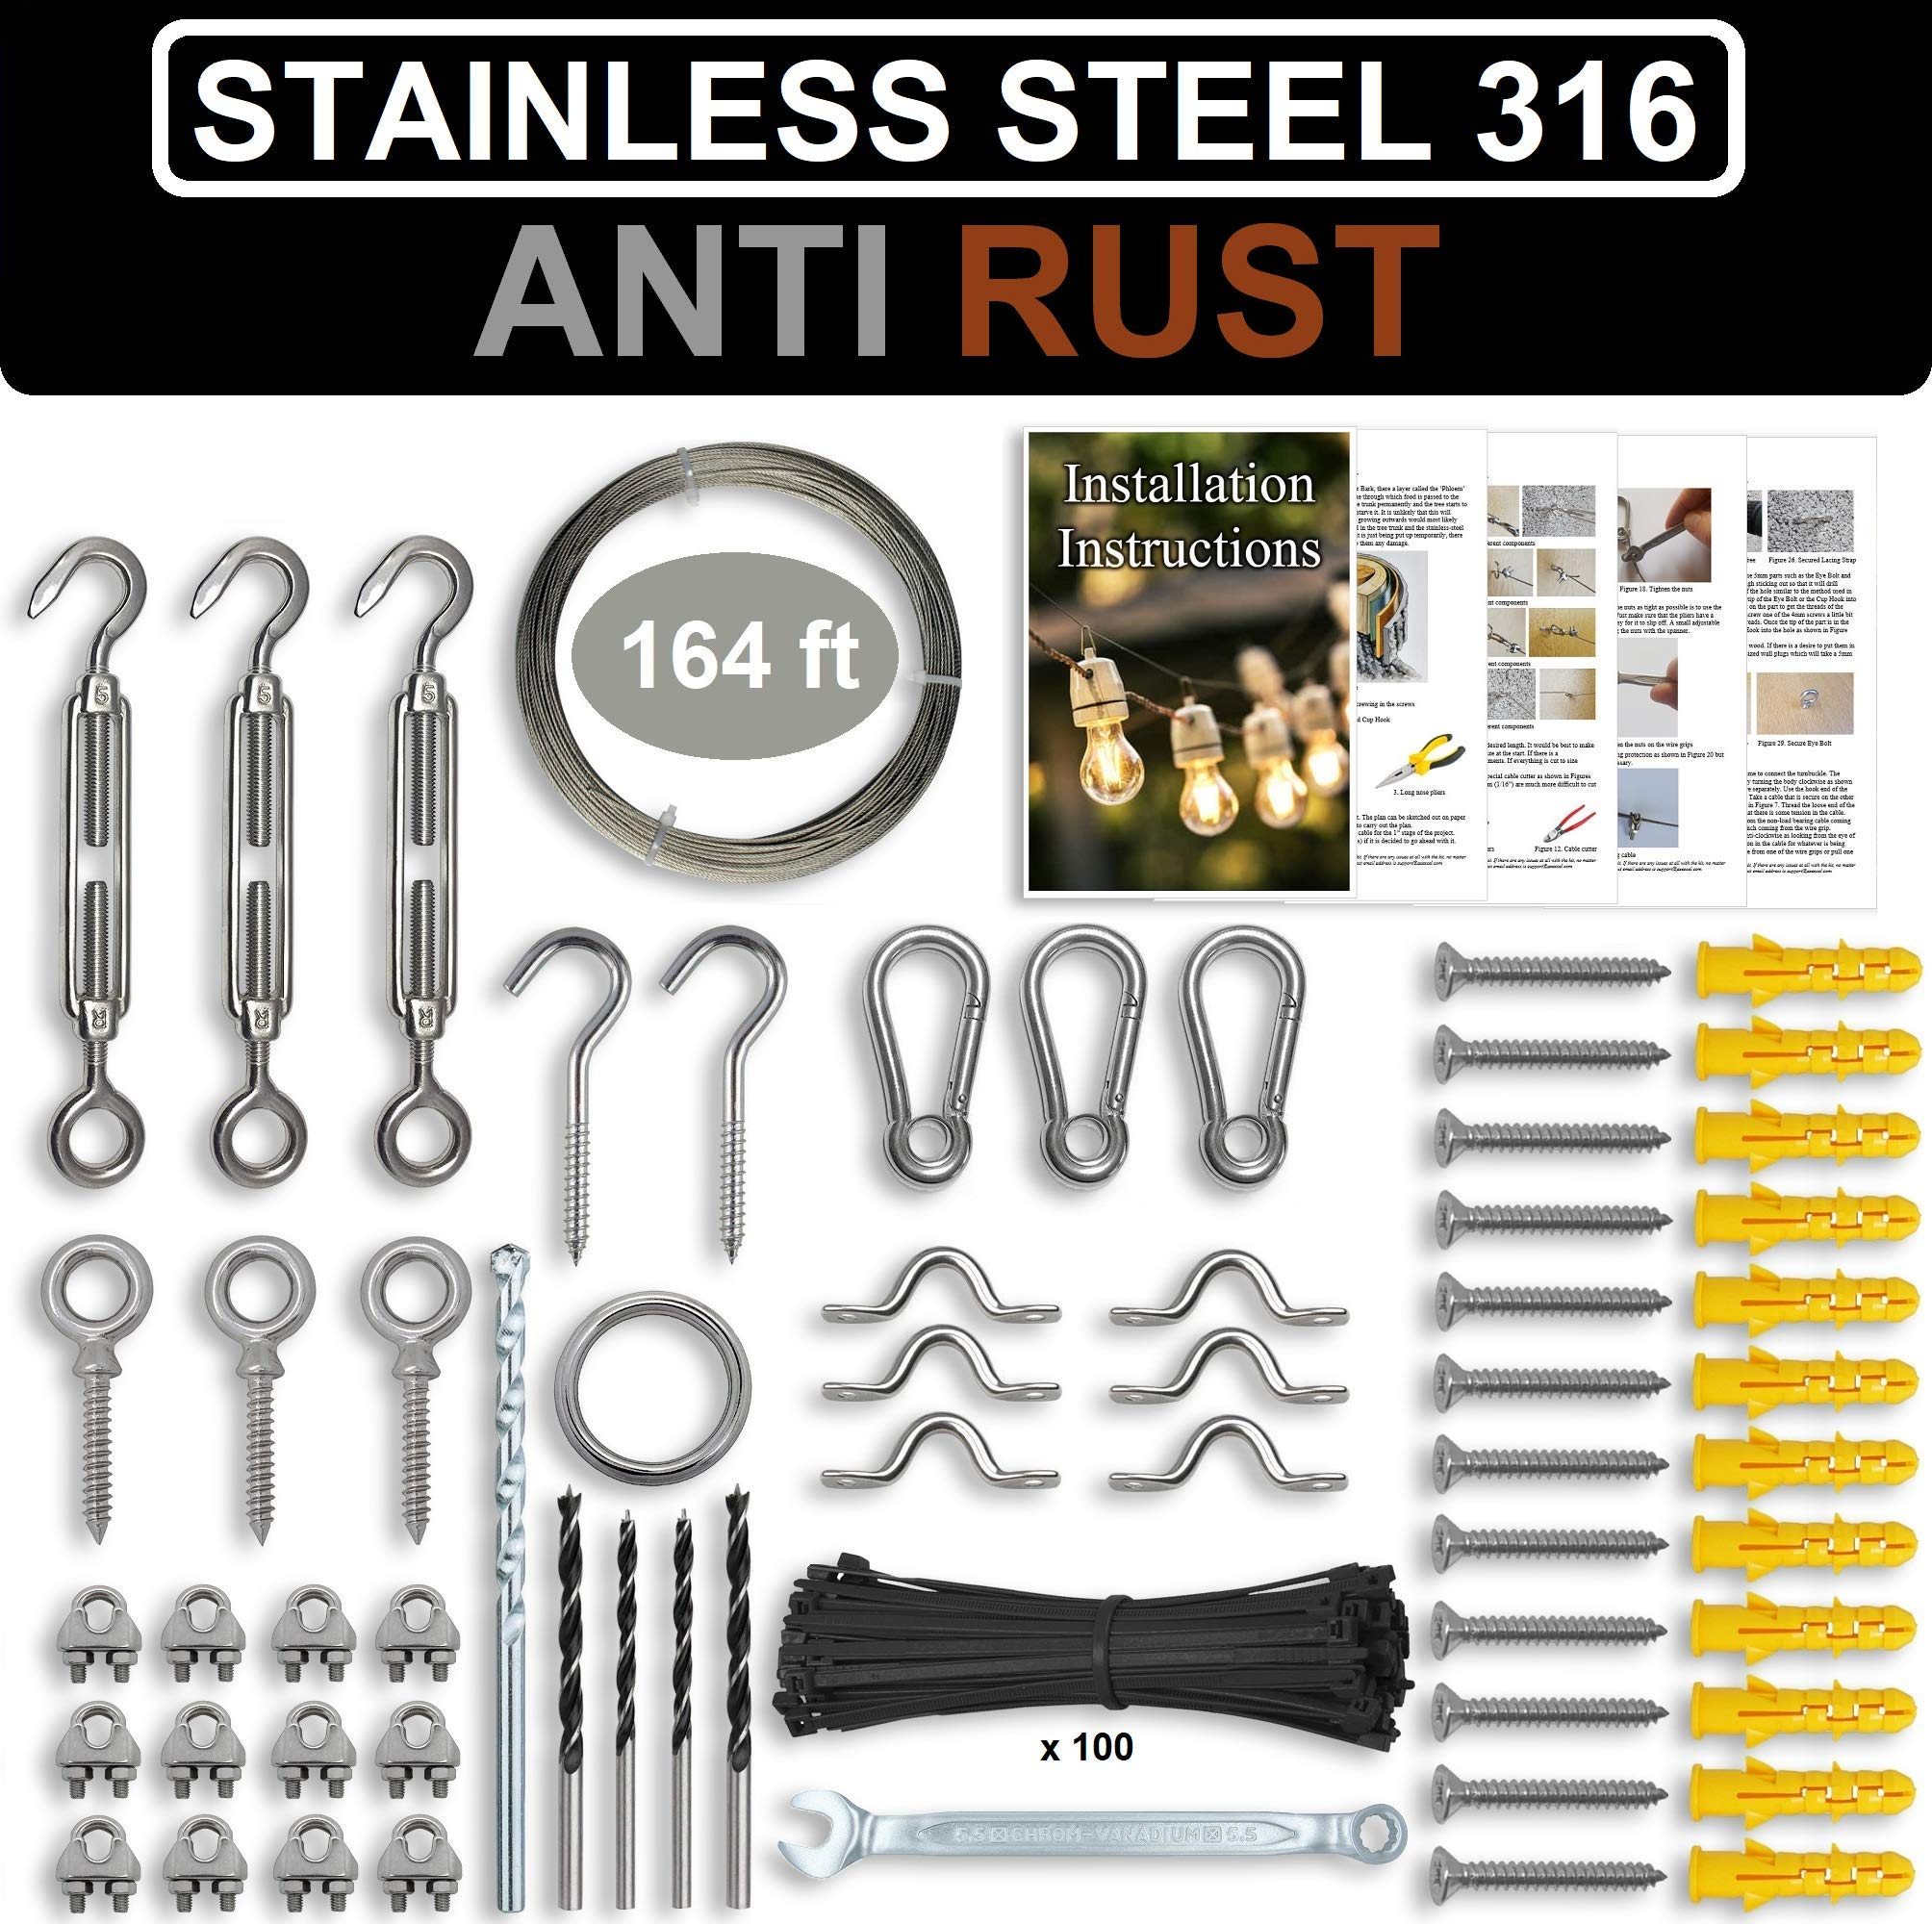 String Light Hanging Kit - Stainless Steel 316 Hardware for String Light Suspension, Outdoor Lighting, Laterns, Globes Etc. Guide Wire Rope with Turnbuckles & Hooks. 164Ft Cable